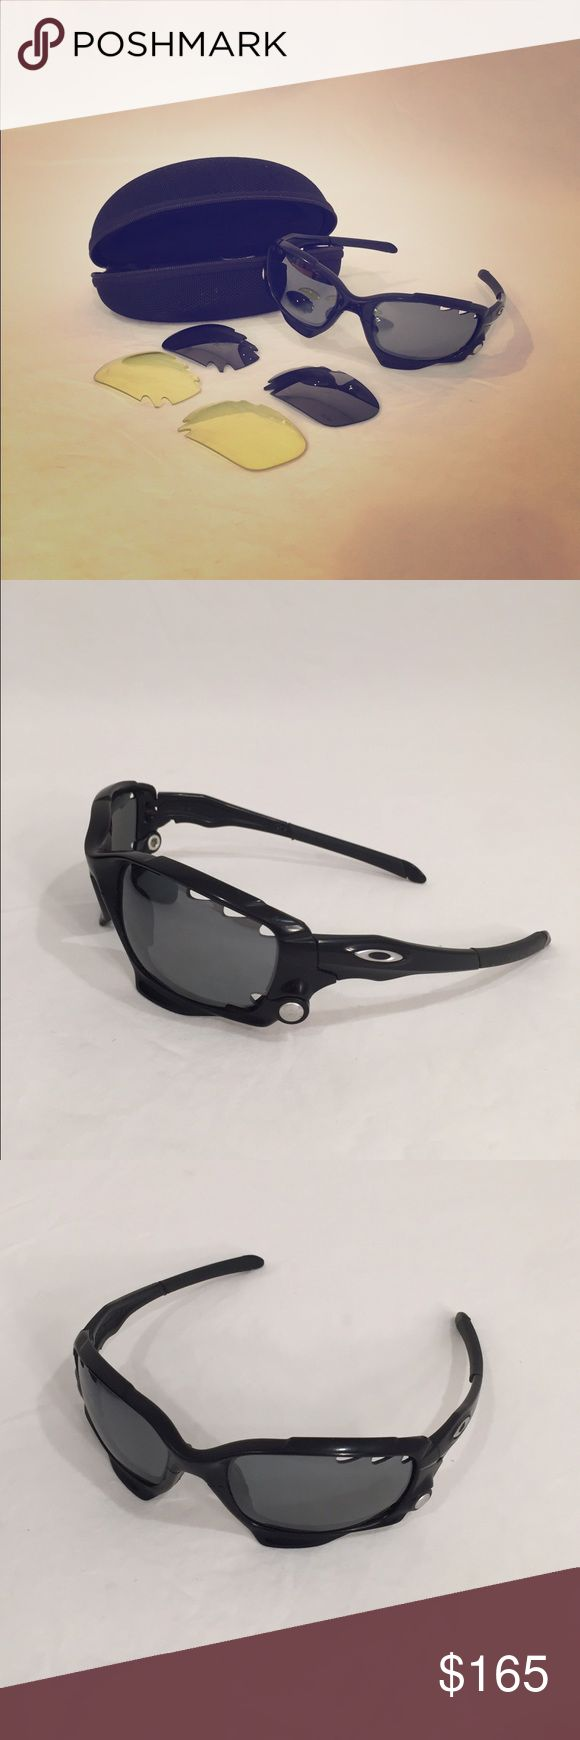 Black Oakley RACING JACKET sunglasses Black Oakley RACING JACKET Sunglasses with Switch lock interchangeable system for wearing authentic Oakley Racing Jacket Black AND Yellow vented Lenses  Along with Black Oakley vault sunglasses hard case. Fitted.  Read Less Oakley Accessories Sunglasses